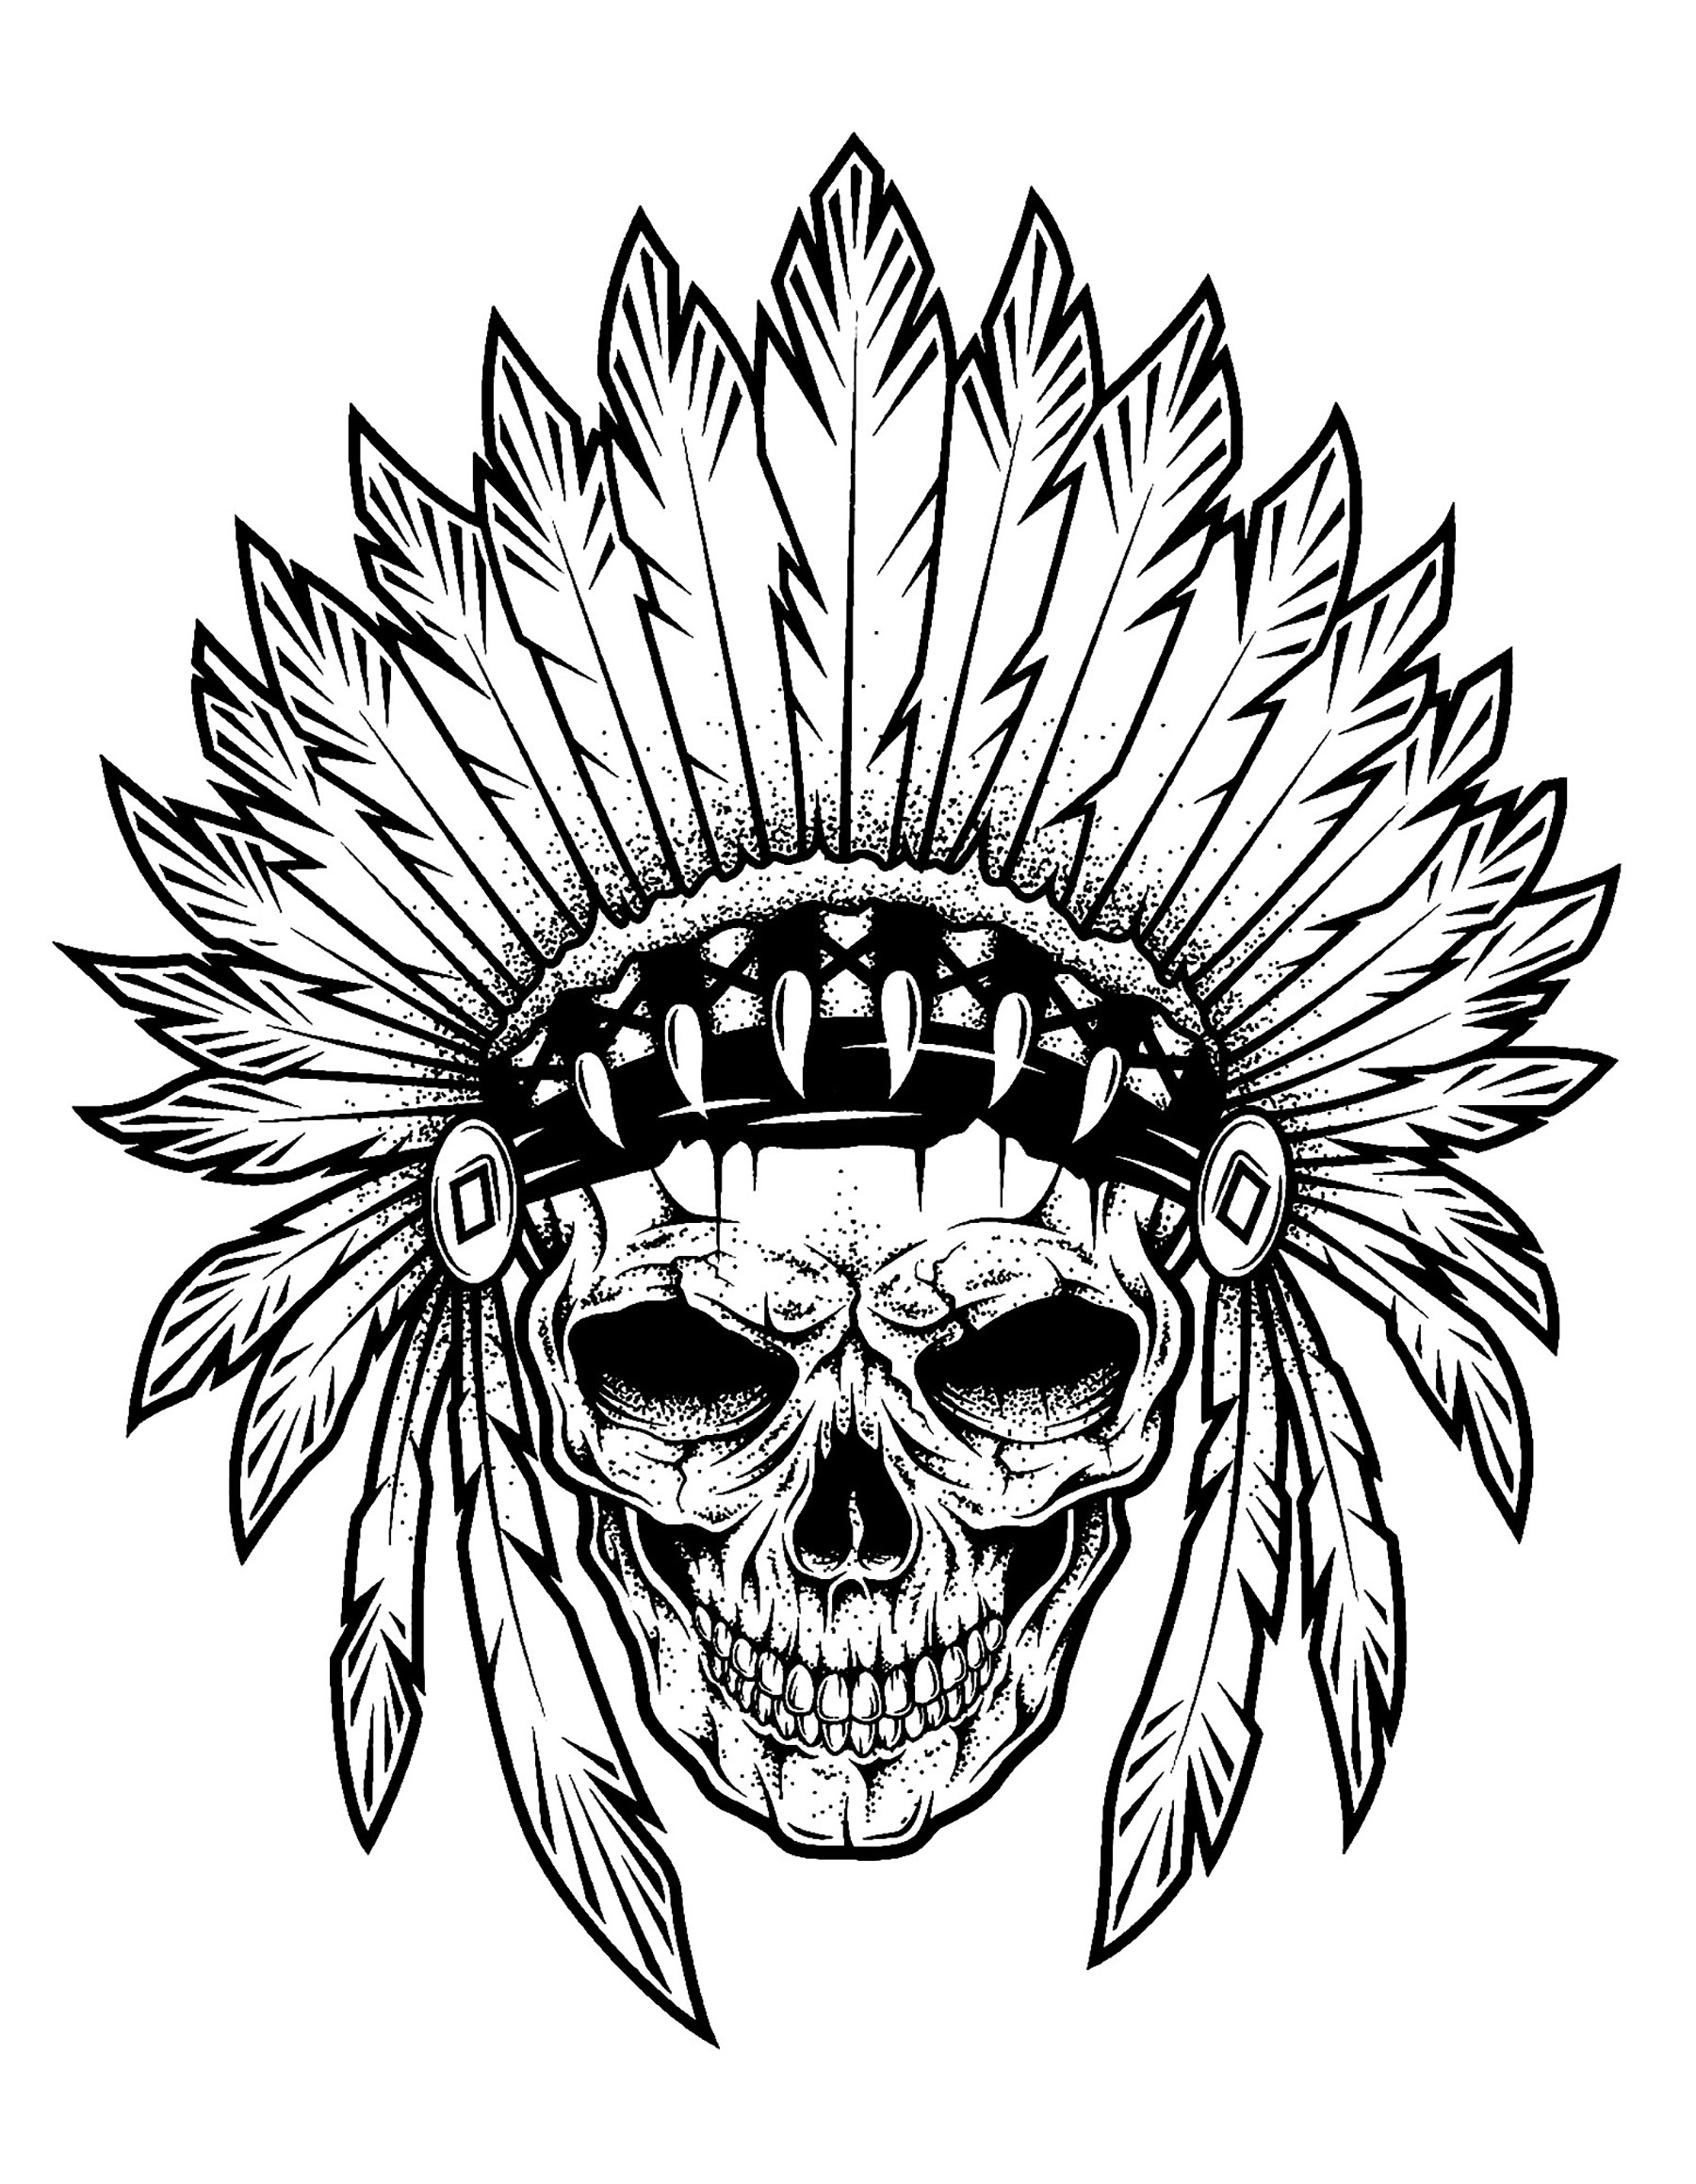 tattoo coloring pages printable floral tattoo designs by erik siuda review gt coloring tattoo coloring printable pages